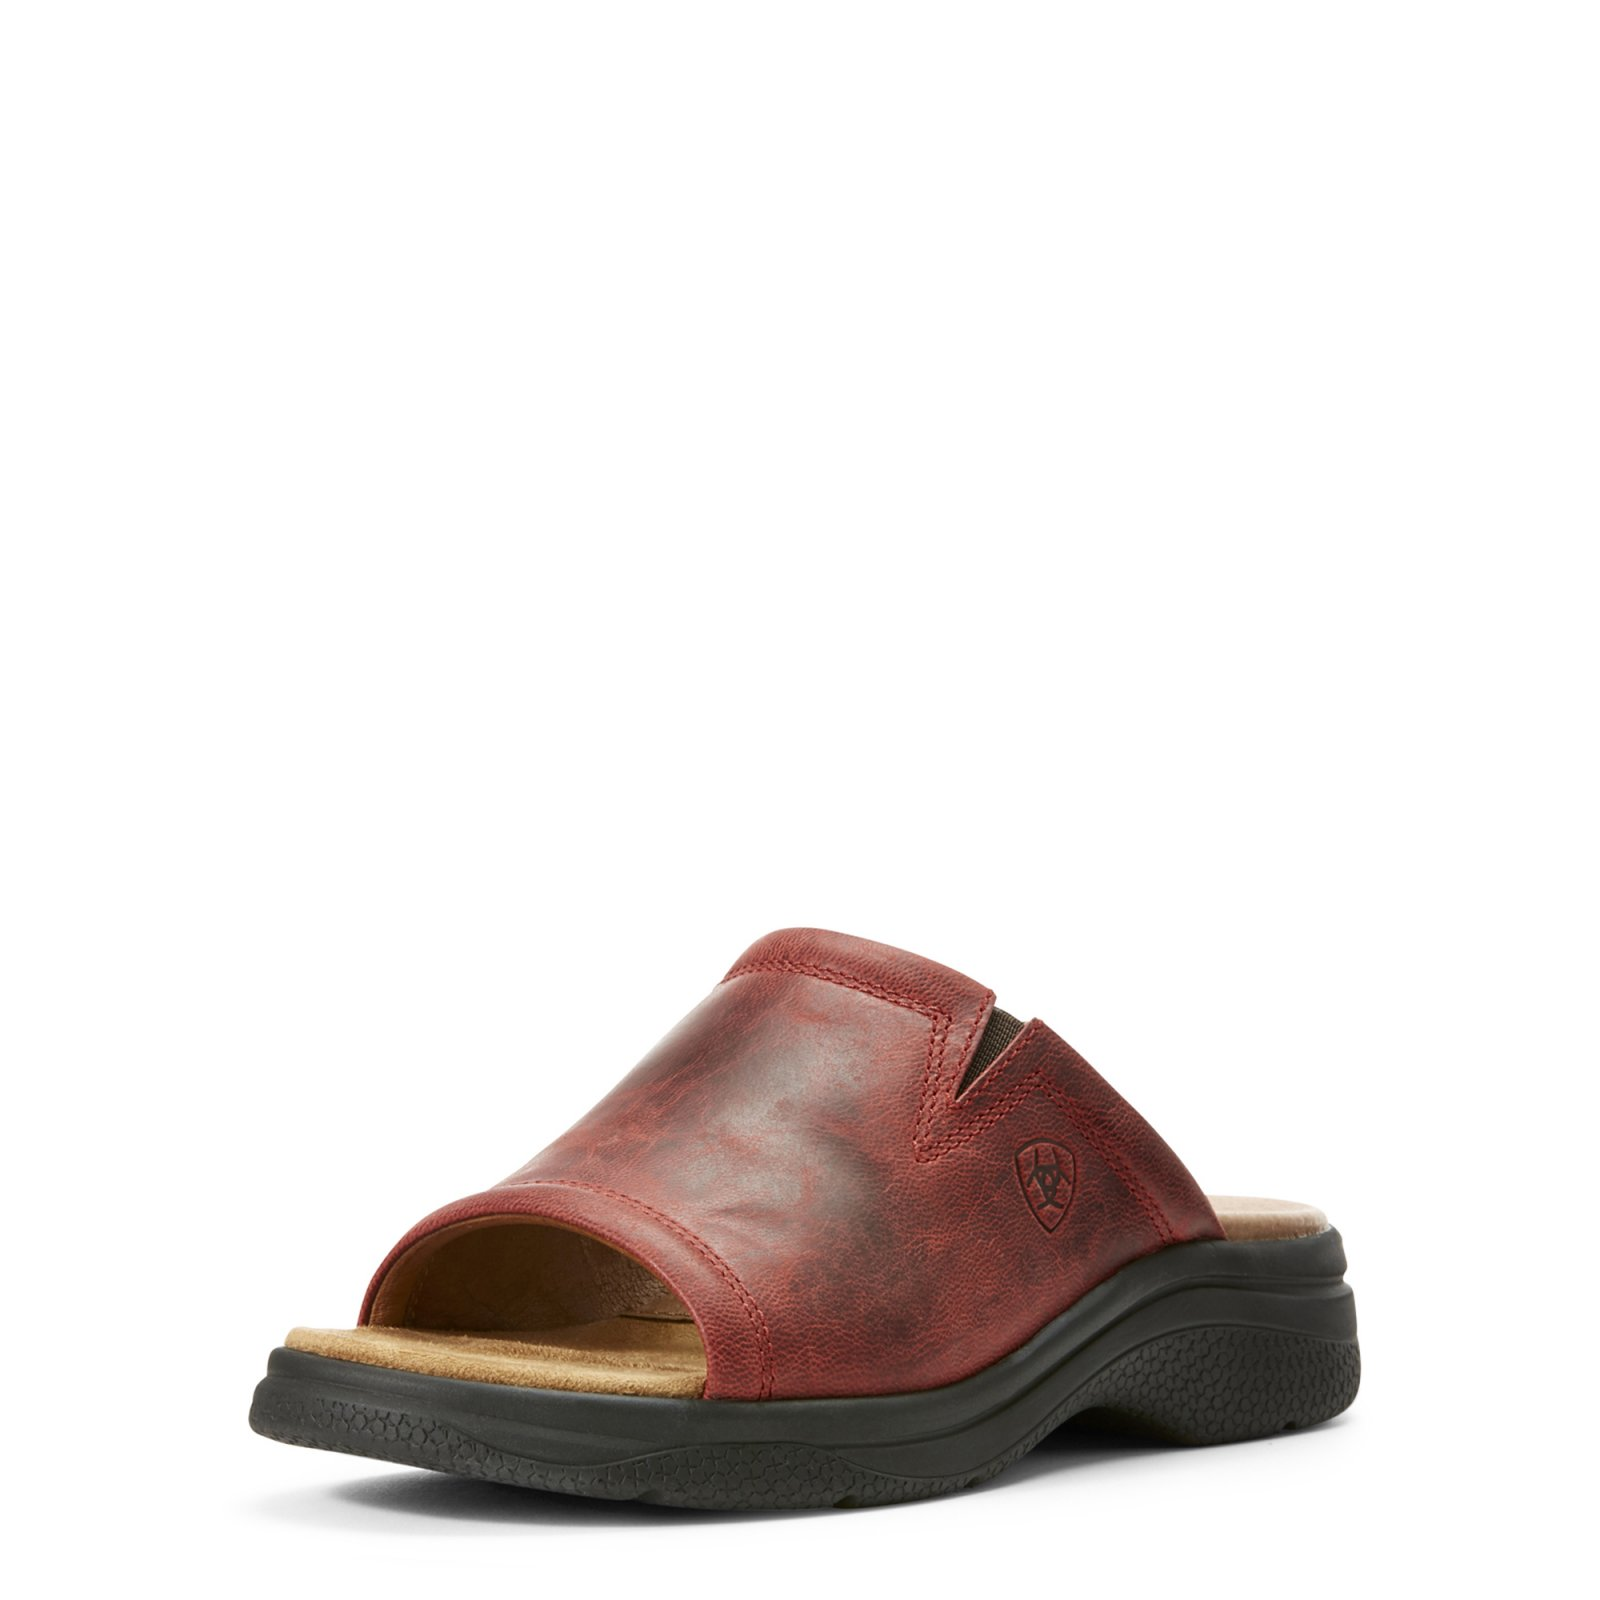 Bridgeport Sandal by Ariat Red